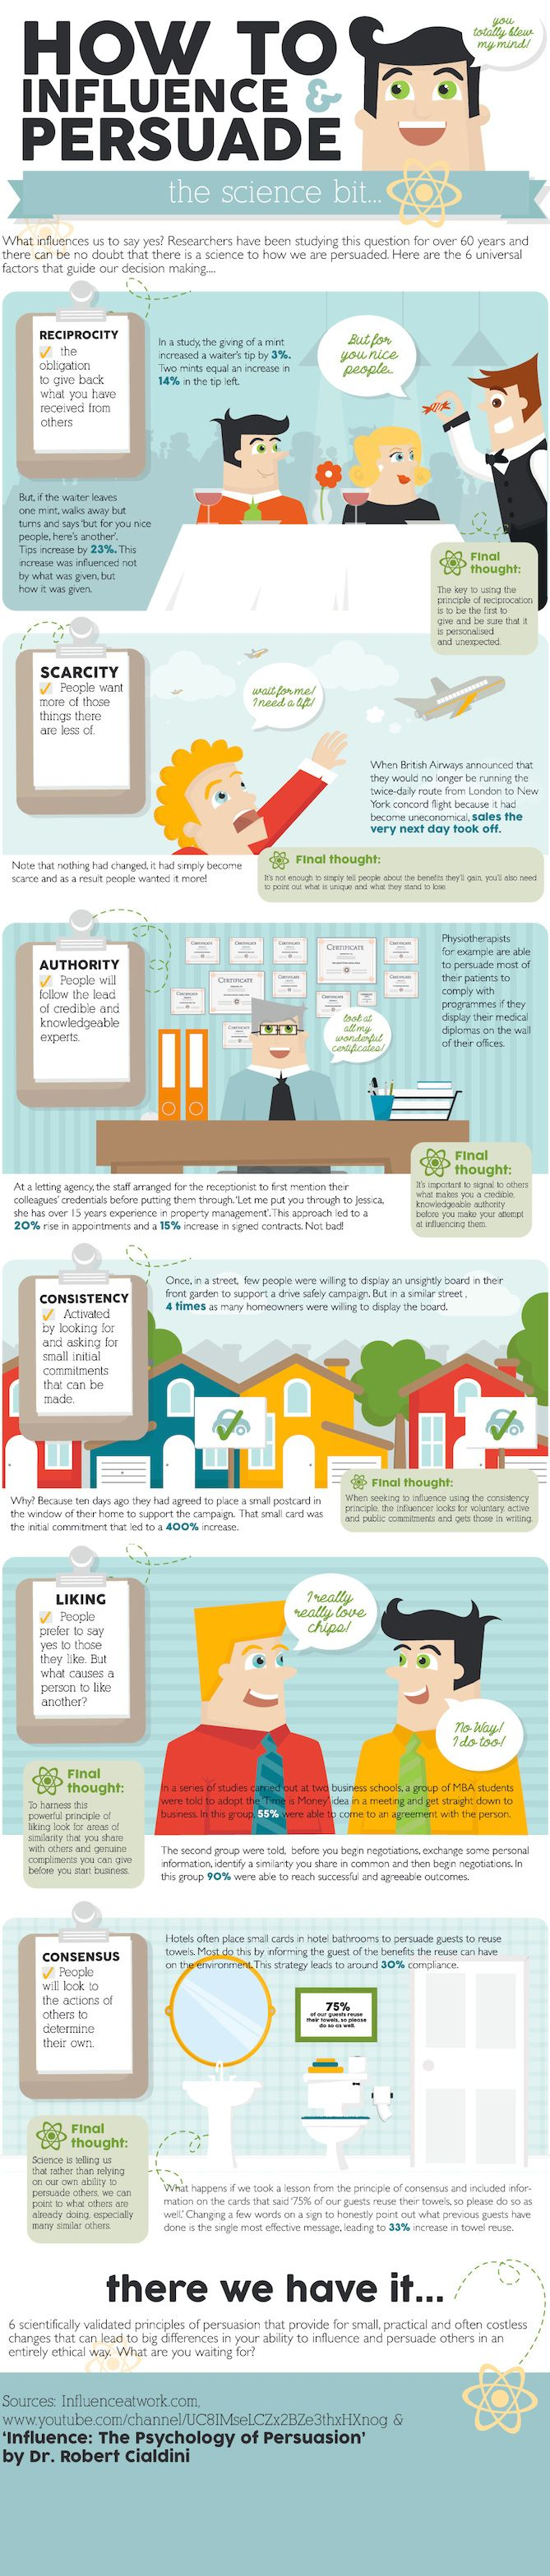 Learn how to influence and persuade people in an ethical and convincing way with the help of this infographic.